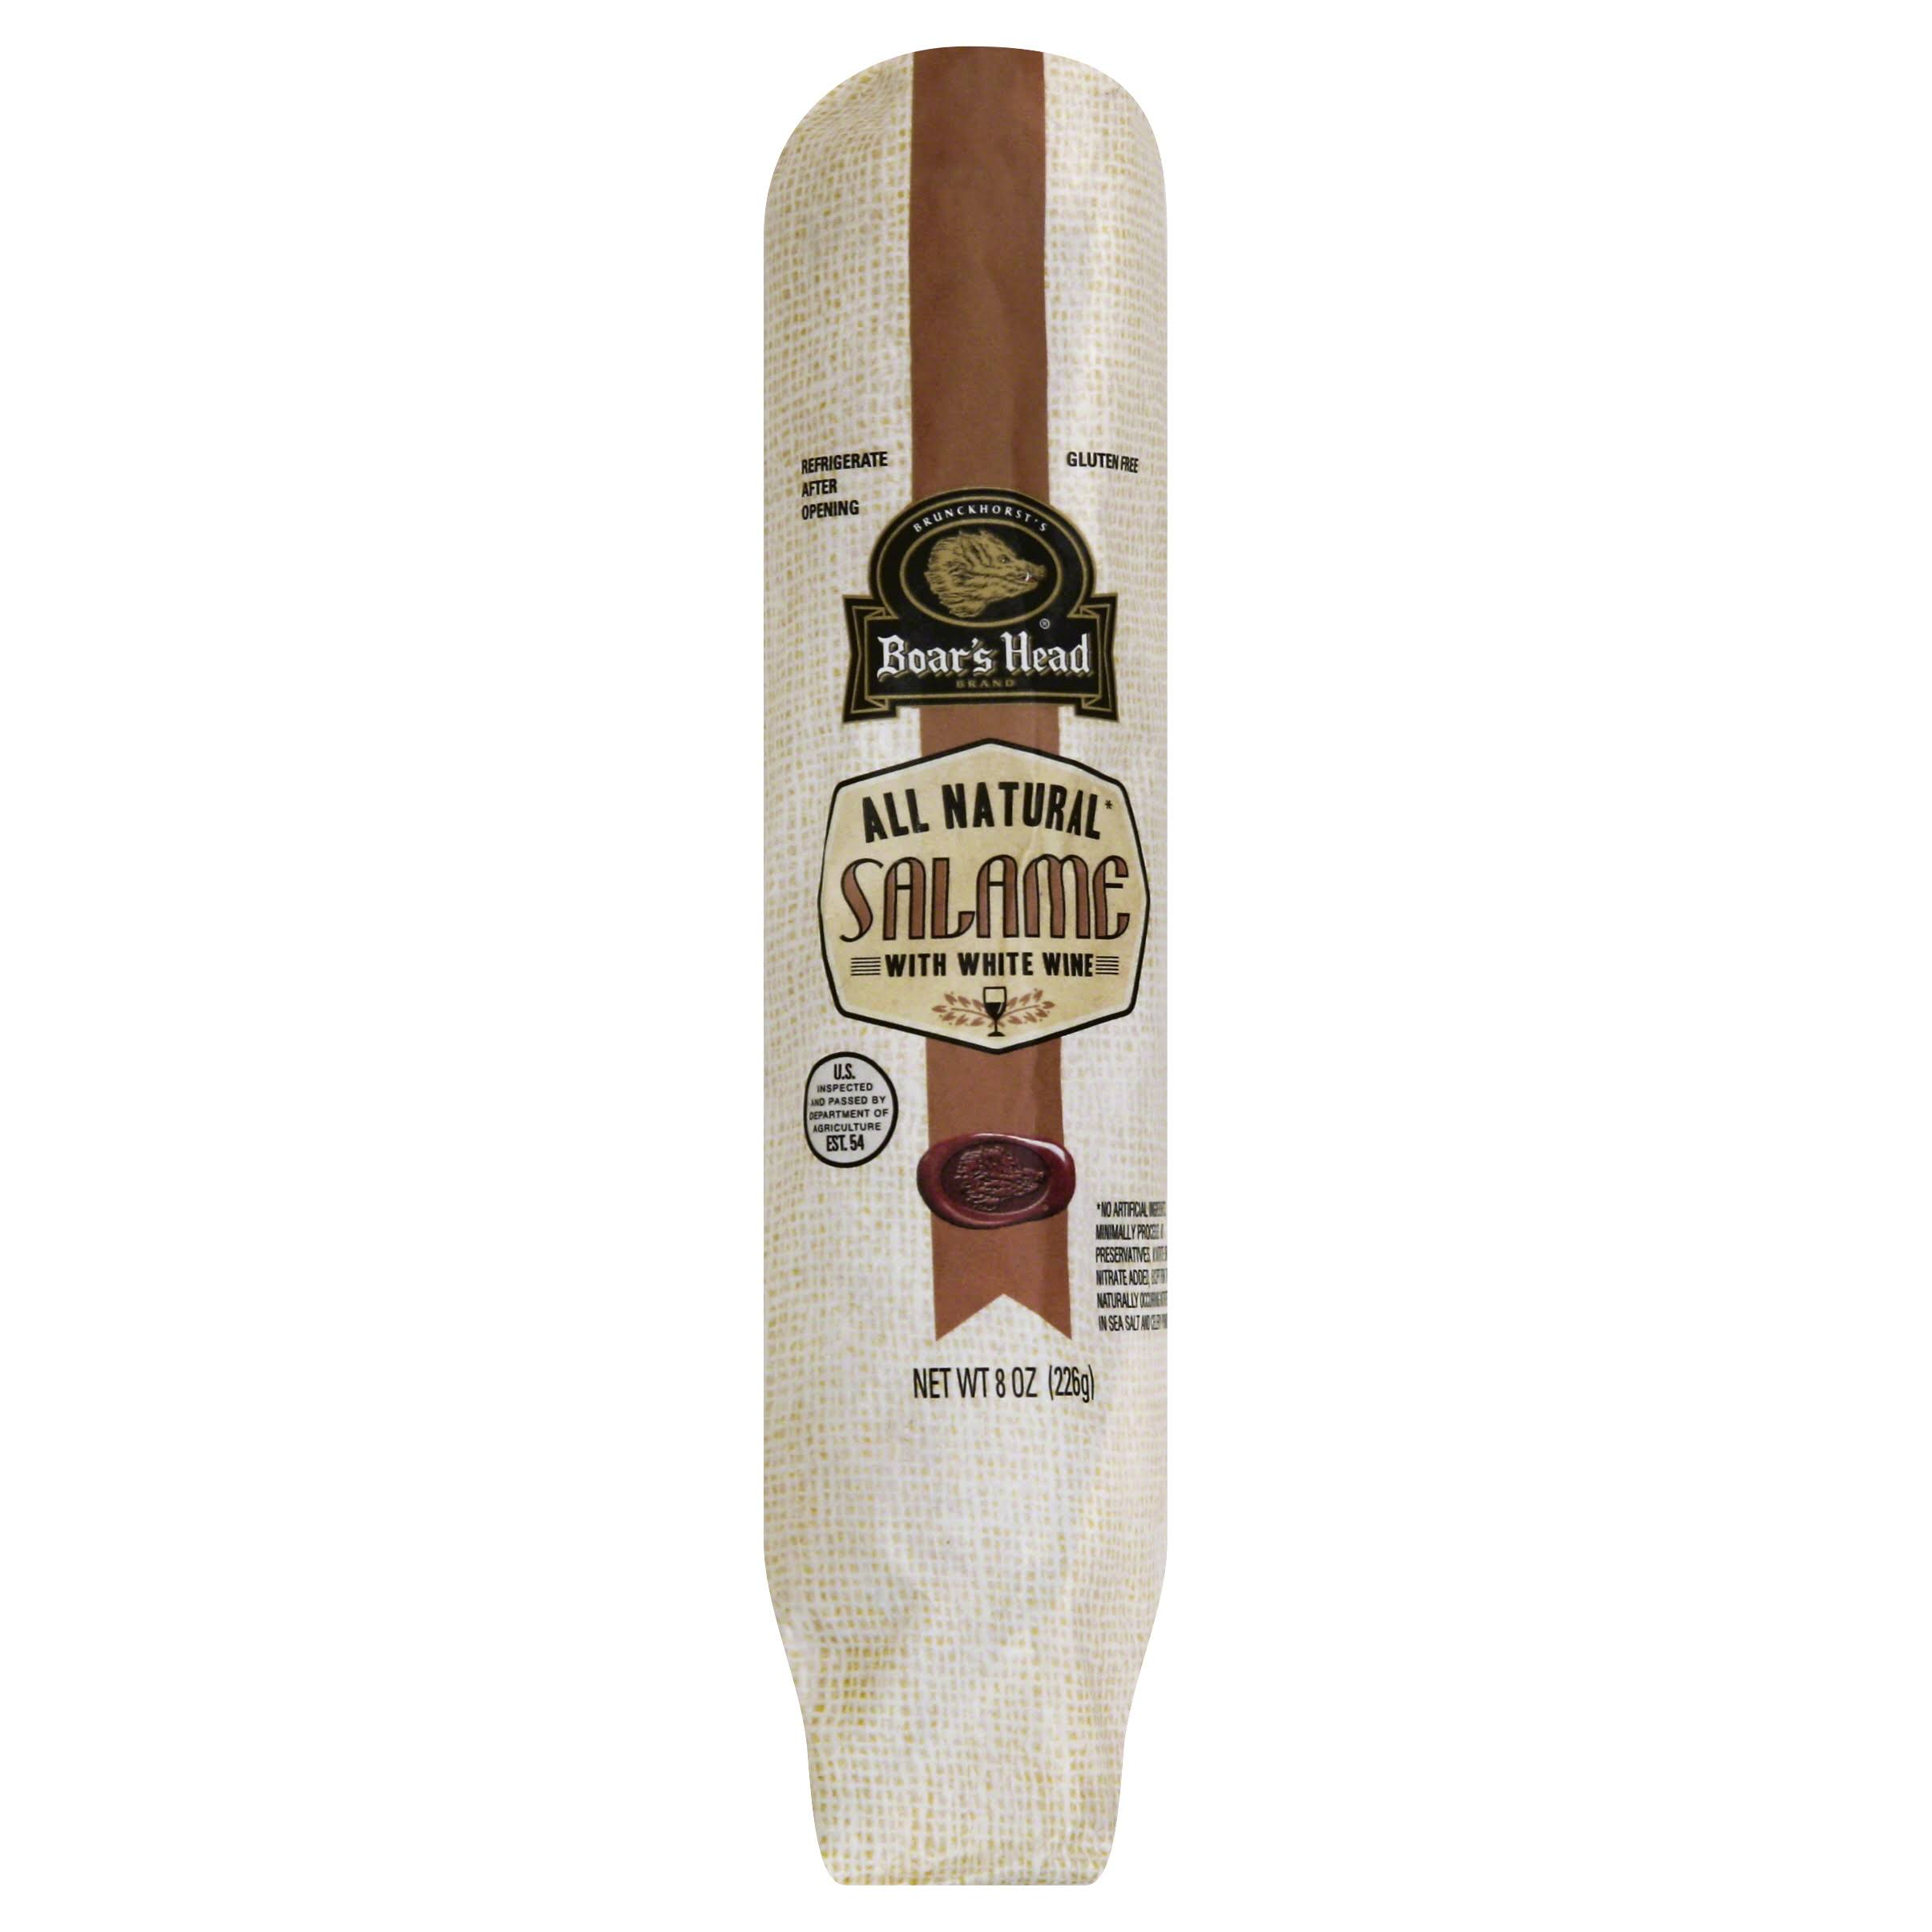 Boars Head Brunckhorst's Salame, with White Wine - 8 oz